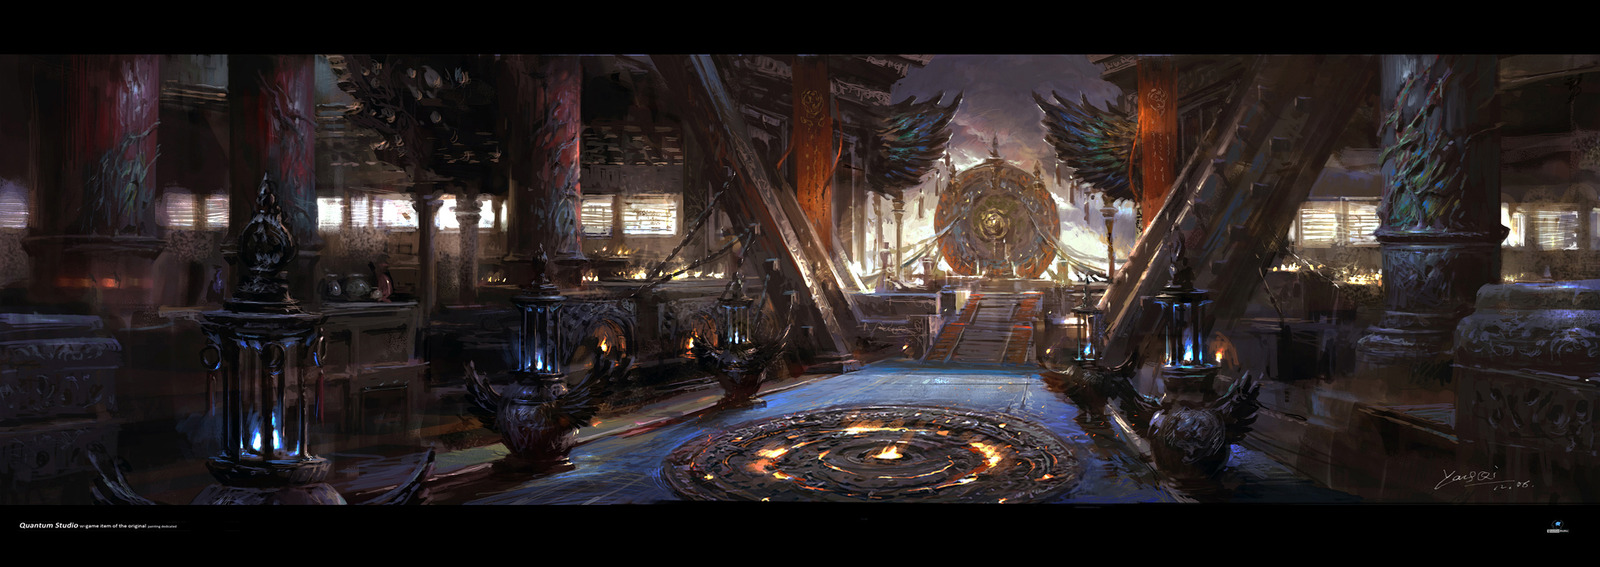 40 concept arts éblouissants du digital painter chinois Yang Qi